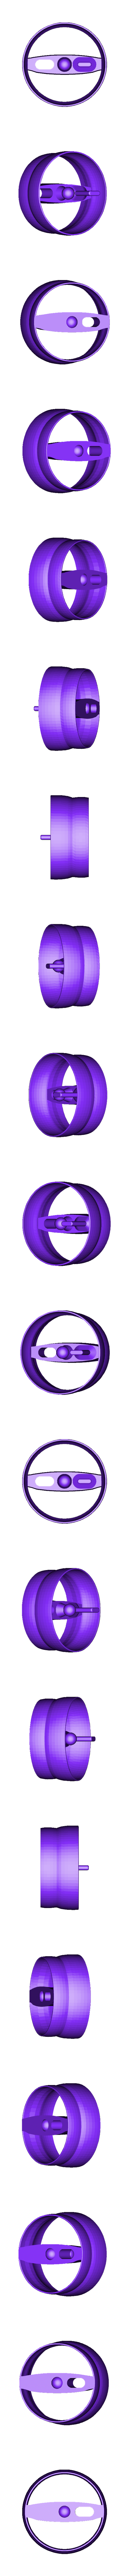 TriAxis_Rotation_Locked.STL Download STL file TriAxis cable/hose/pipe chain guide • 3D printable model, ScaleToReal